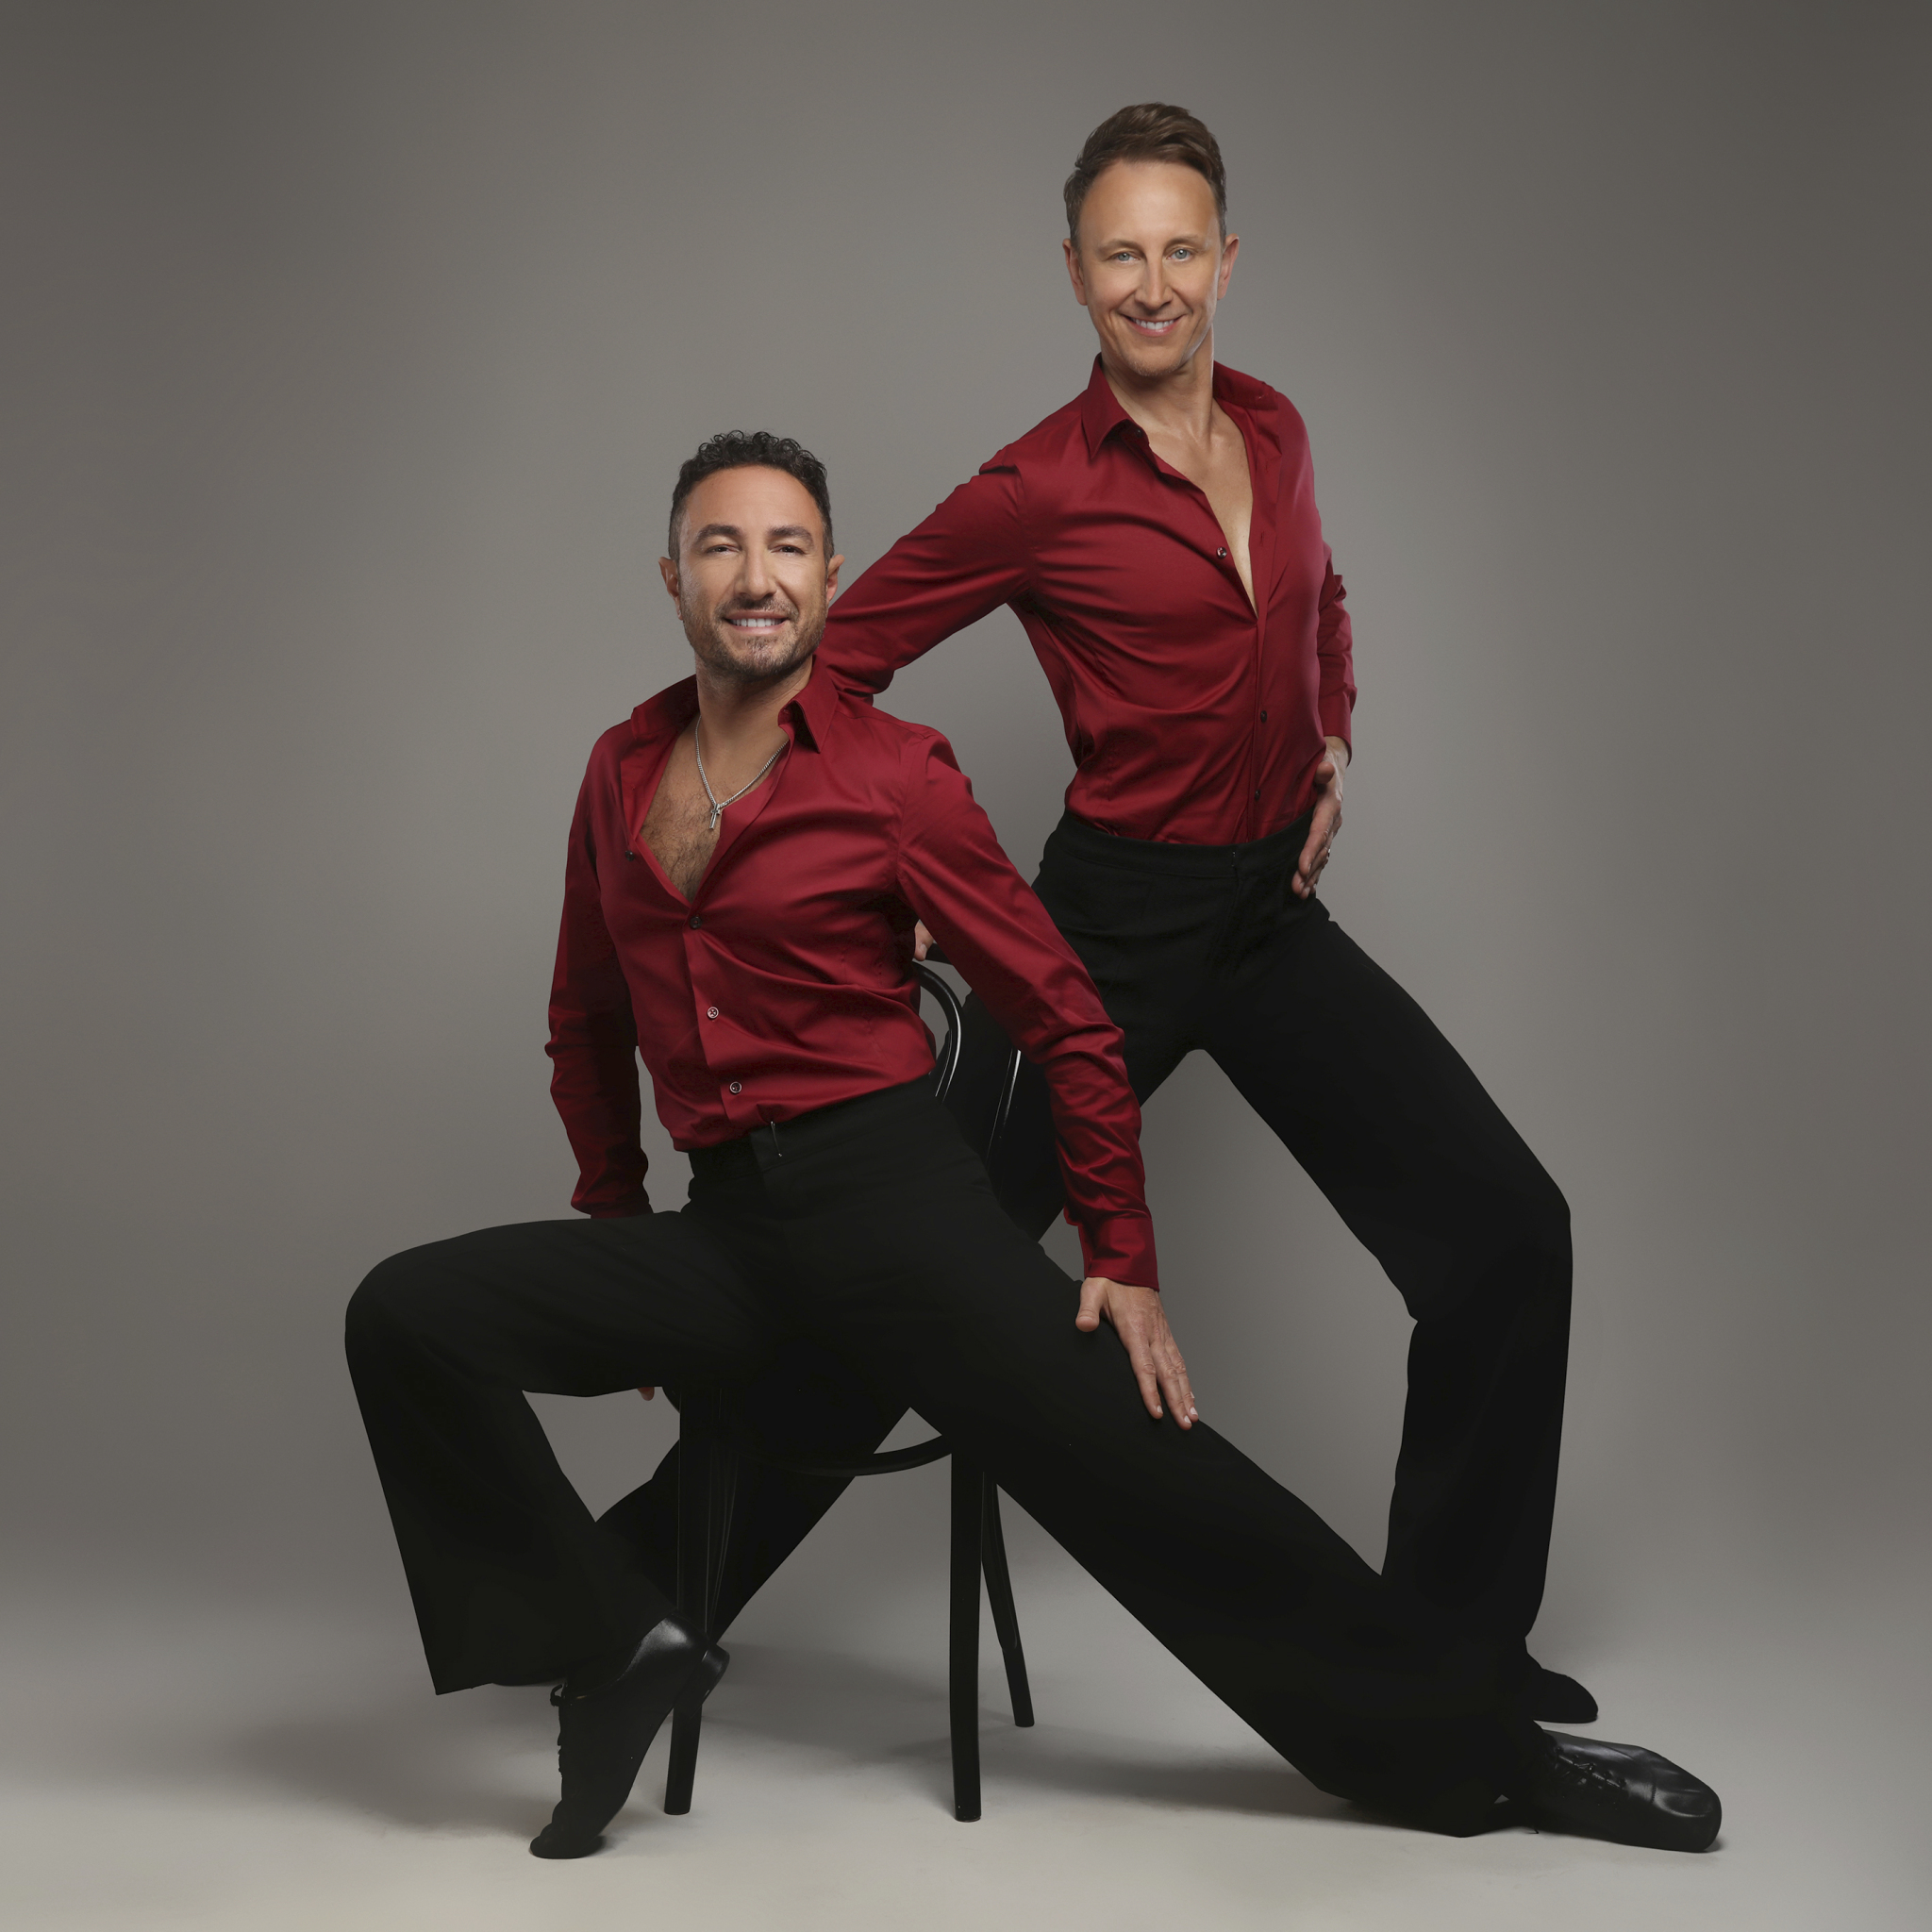 Ian Waite and Vincent Simone posing for the camera